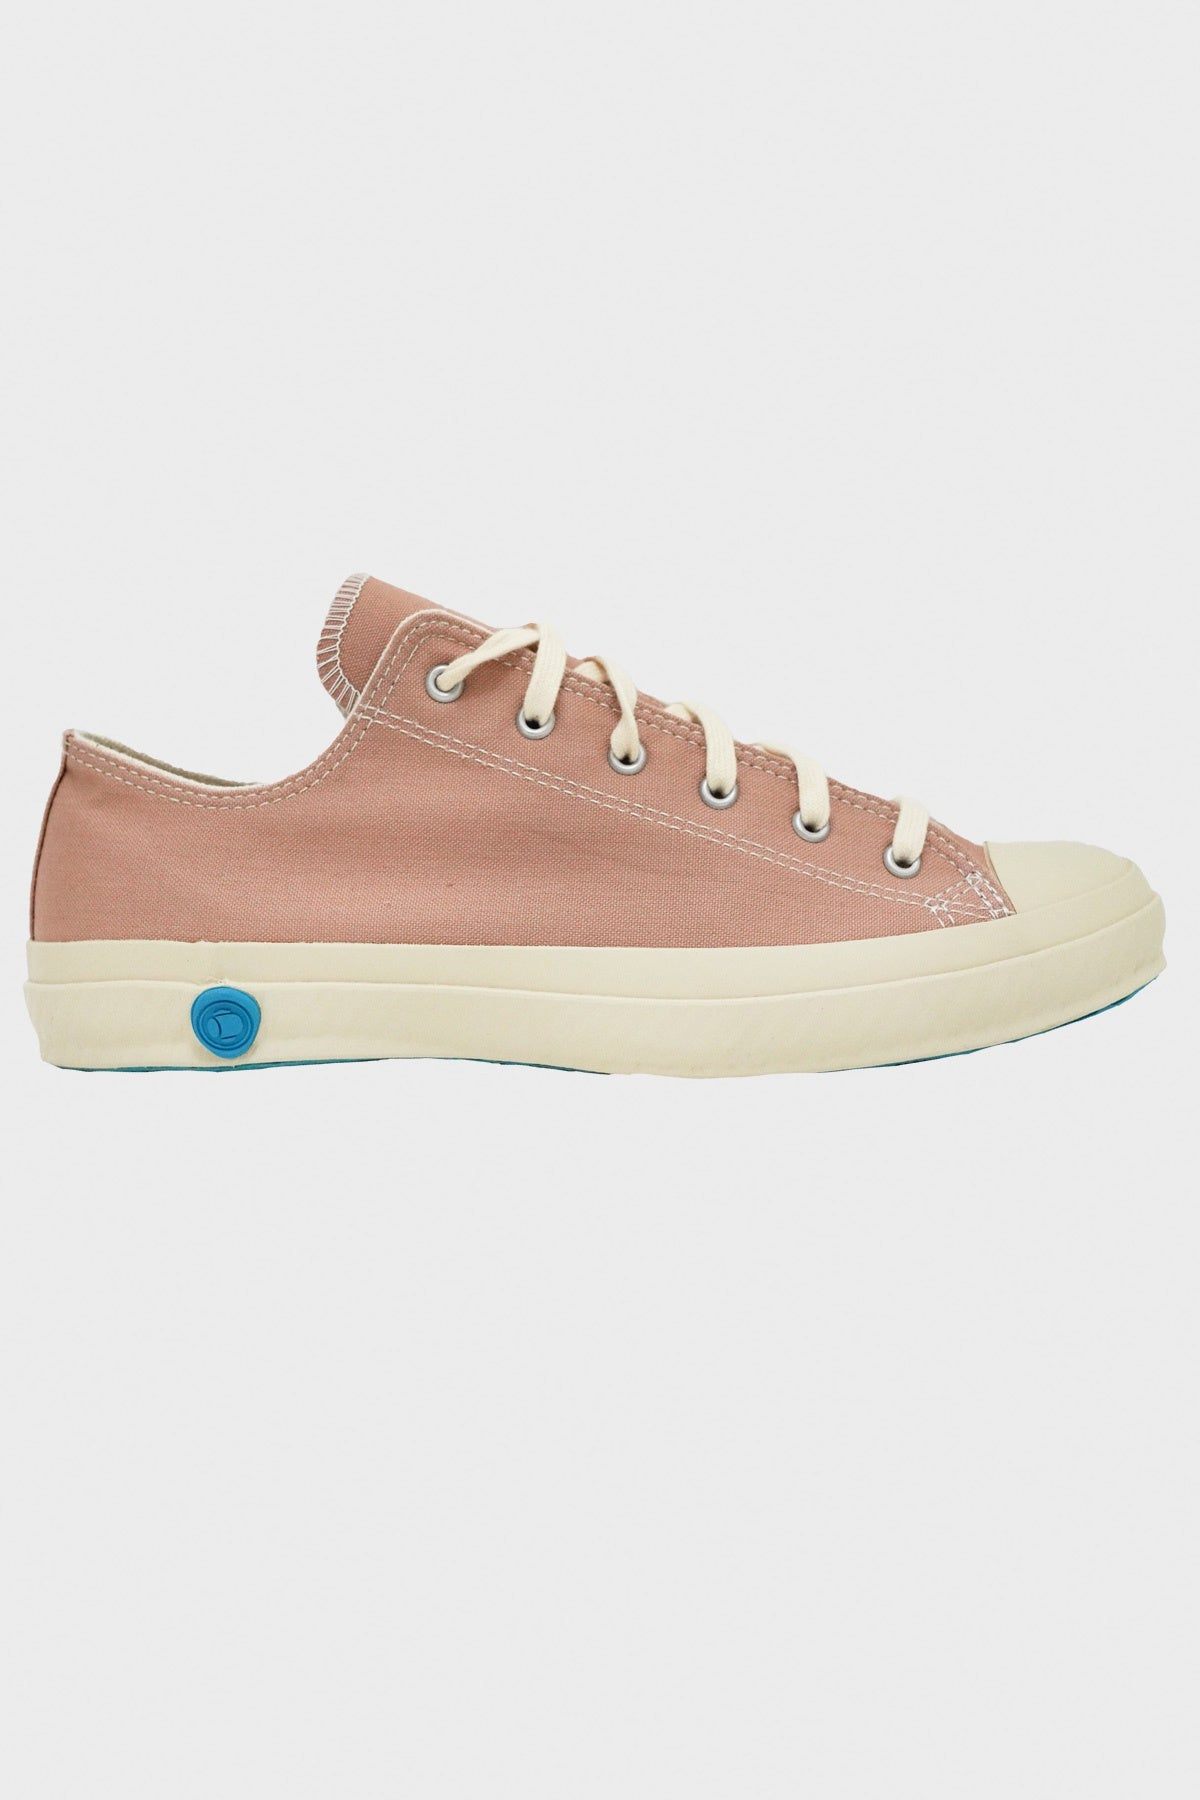 Shoes Like Pottery - Lo-Top 01 JP - Coral - Canoe Club